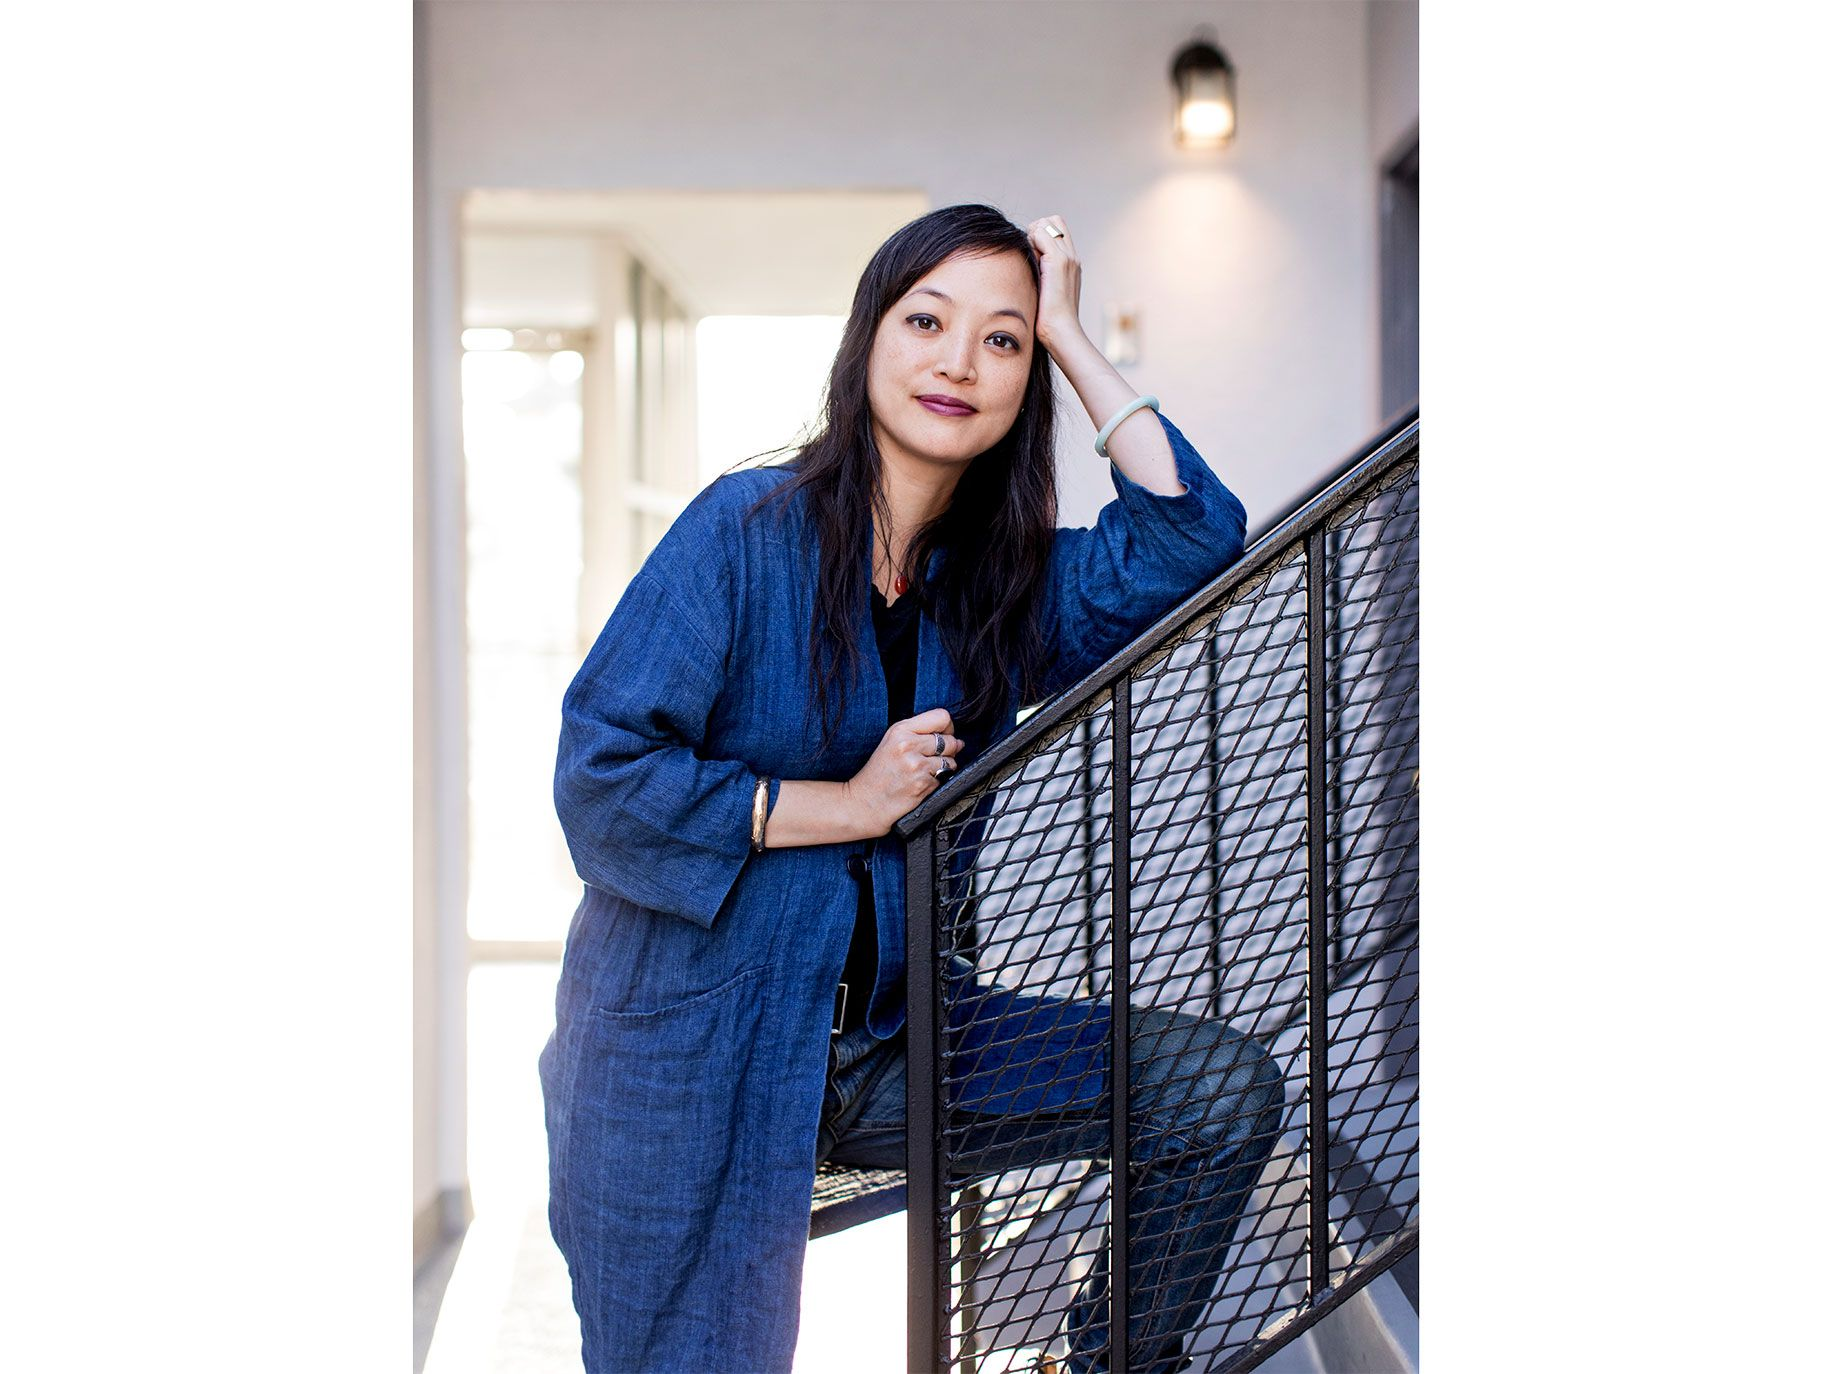 A poet and a playwright, Carla Ching had to be a quick study when she landed her first TV gig on the USA drama Graceland. Now she writes for shows like Fear the Walking Dead.